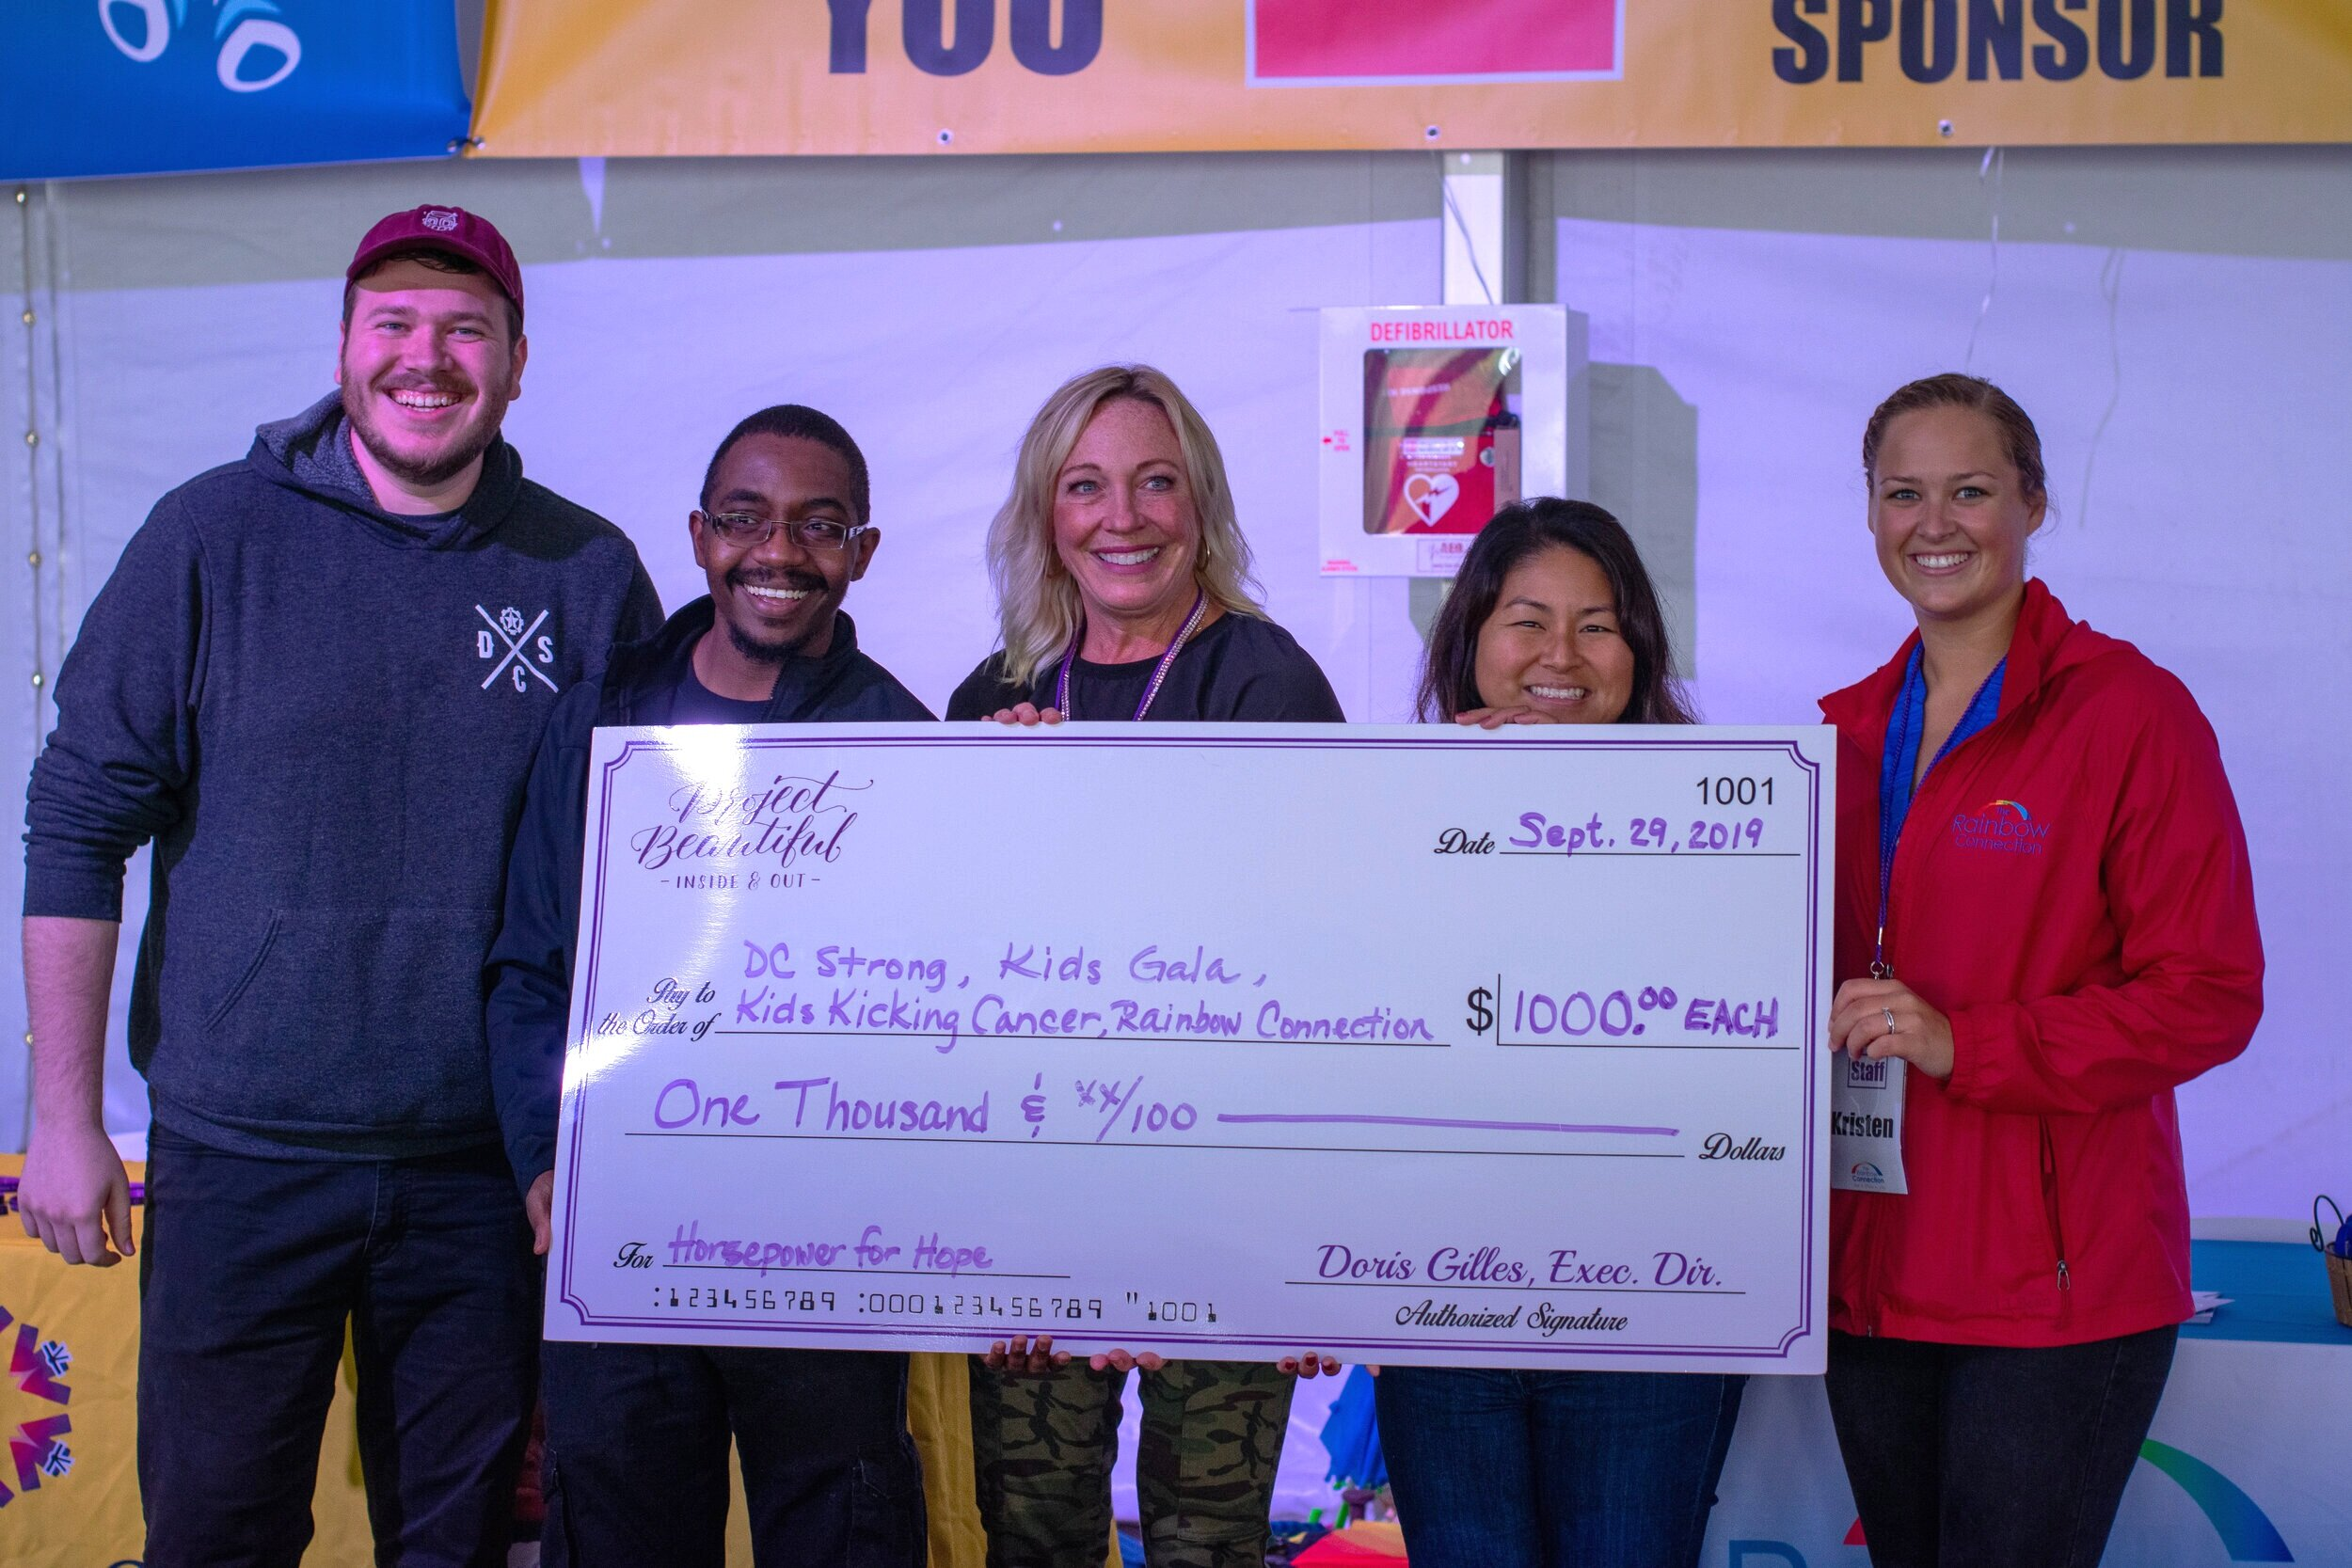 Project Beautiful Executive Director, Doris Gilles (2nd from right) presented each organization with a $1000 check to continue their amazing work!